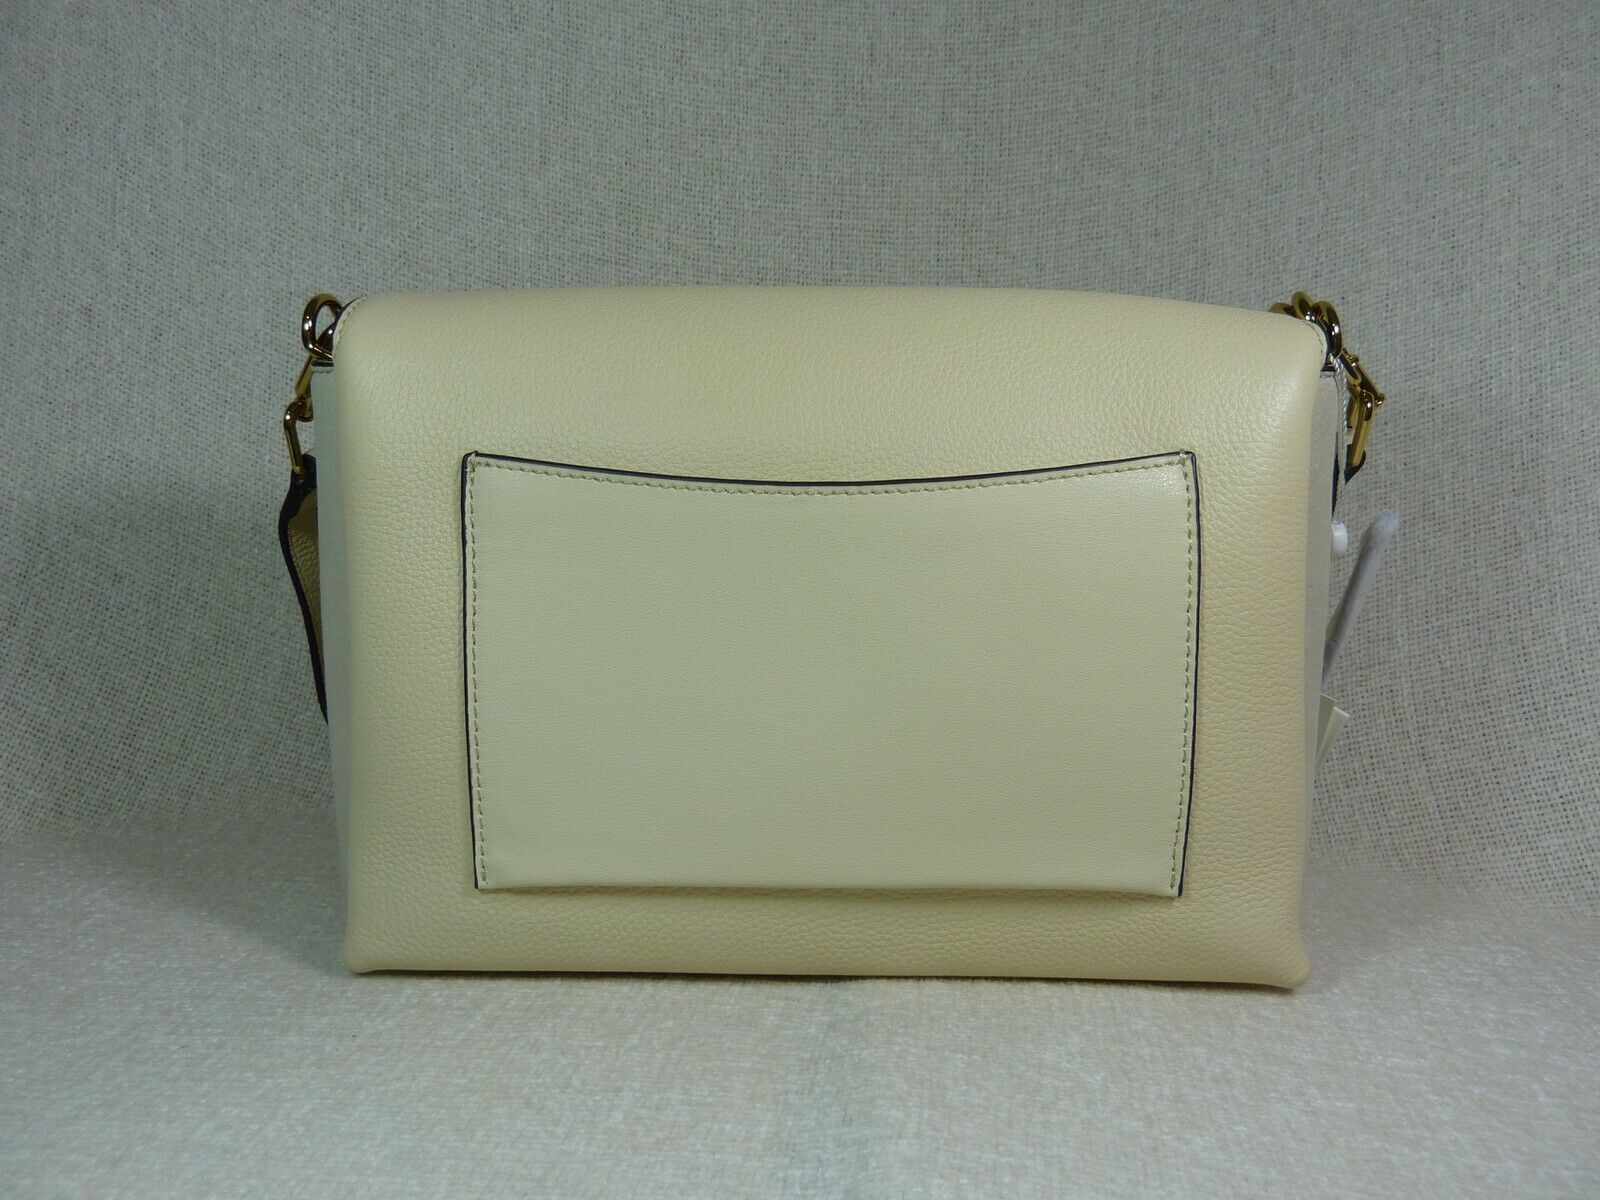 NWT Tory Burch New Cream KIRA Mixed-material Double-strap Shoulder Bag image 4